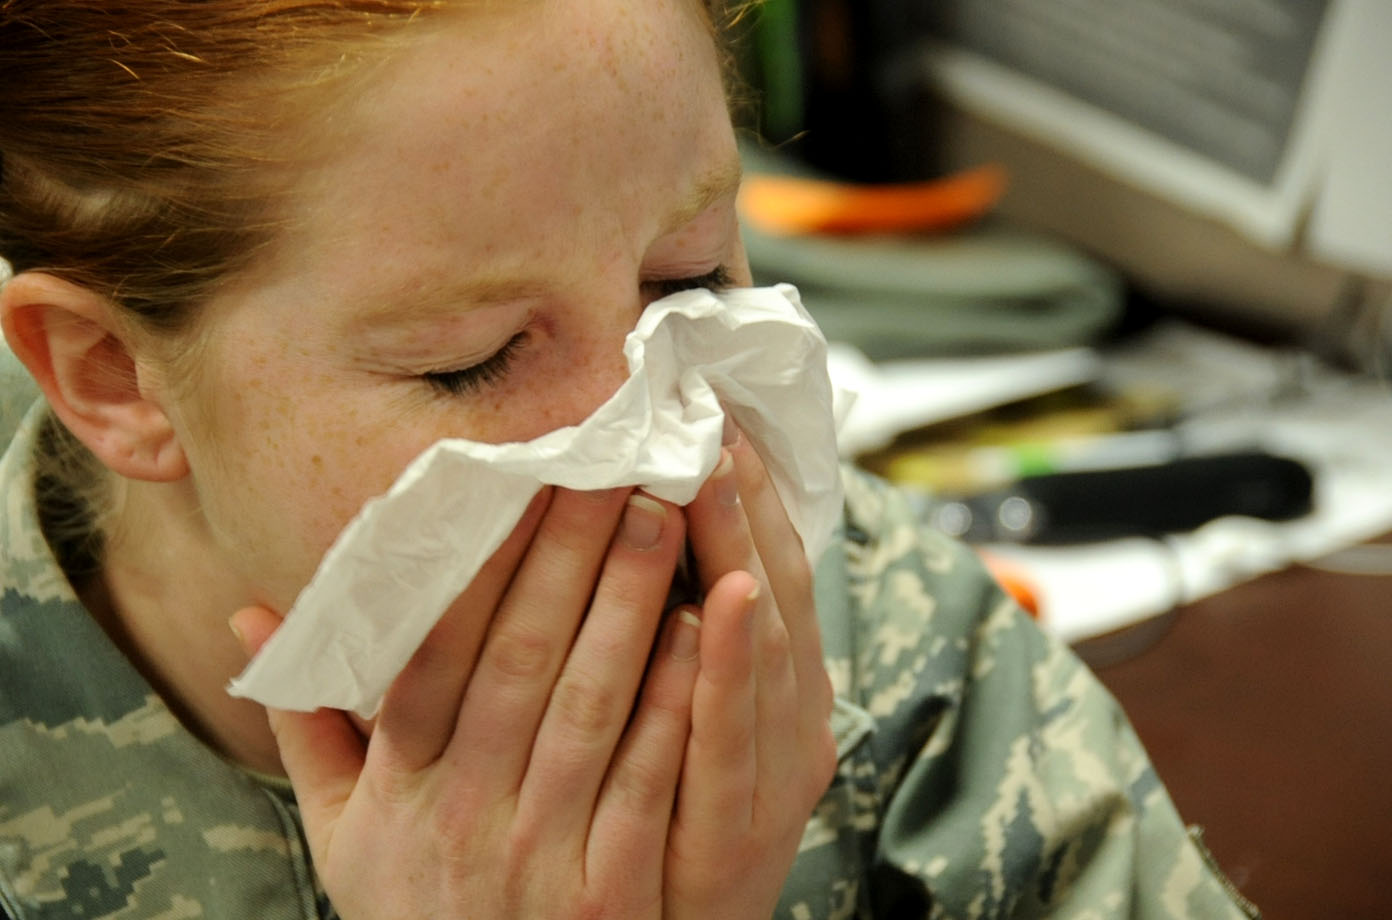 How to ease coughing?